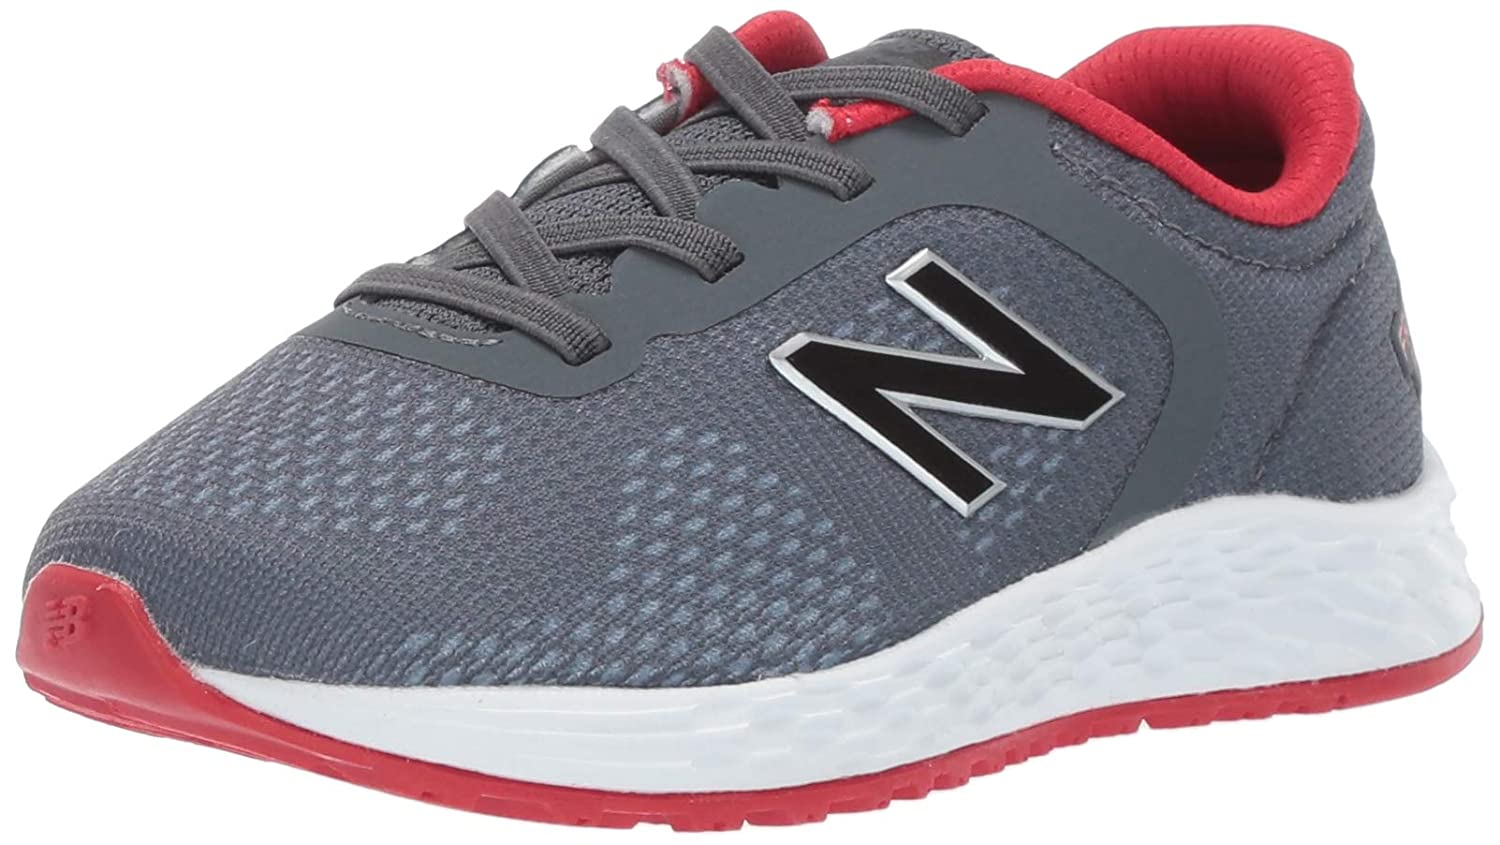 激安先着 [ニューバランス] Kid ユニセックスキッズ NB19-IAARICC2-Infant Big Girls B07BQV5S4F Girls Gunmetal/Energy Red ビッグキッズ(8~12才) ビッグキッズ(8~12才)|Gunmetal/Energy Red|6 W US Big Kid, 杜森プラザ:e3ca33f0 --- vilazh.indexis.ru